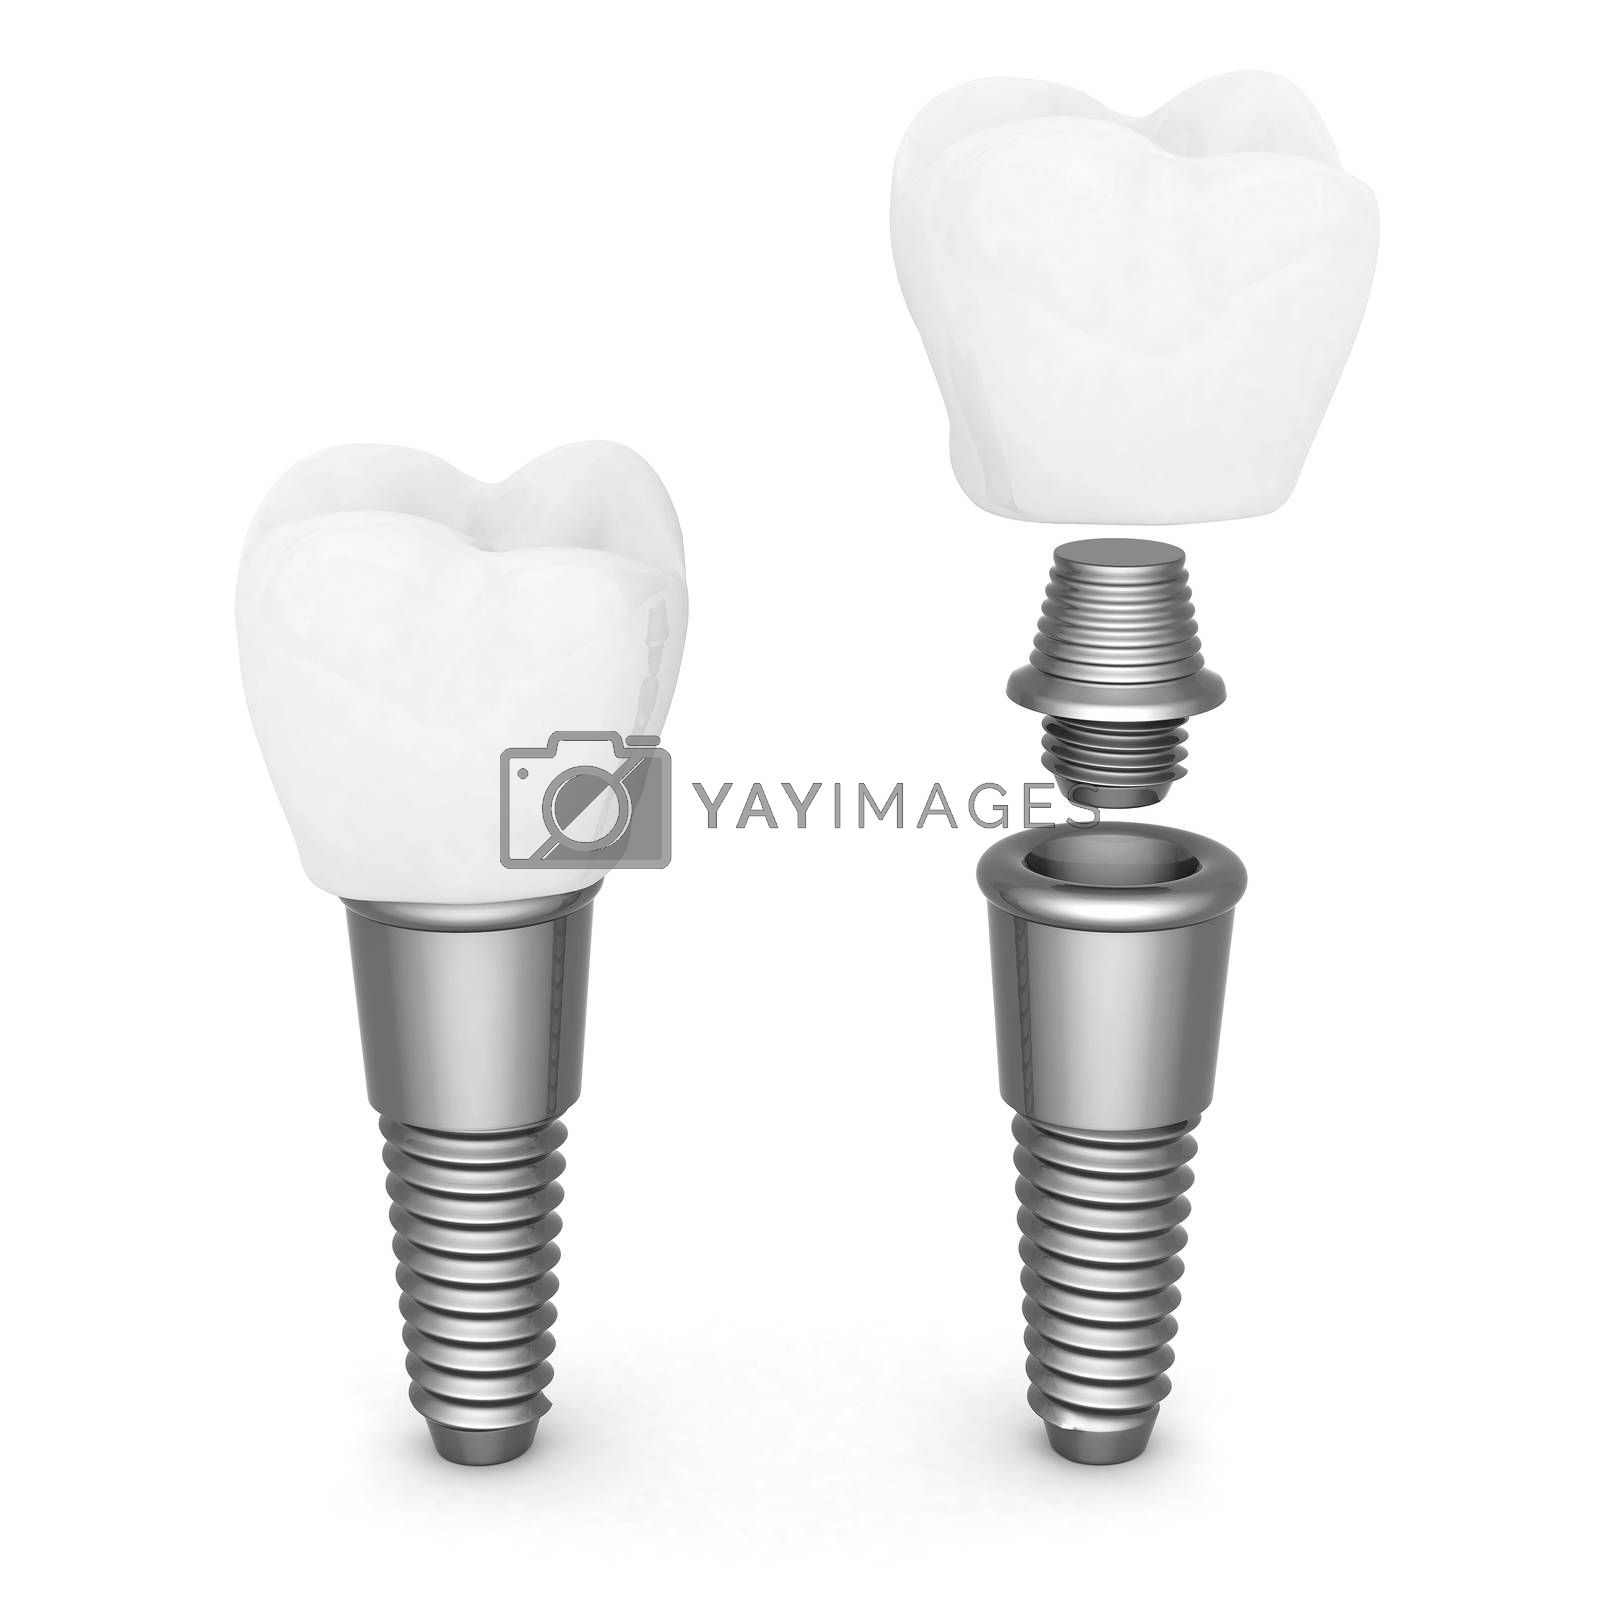 Dental implants by mrgarry